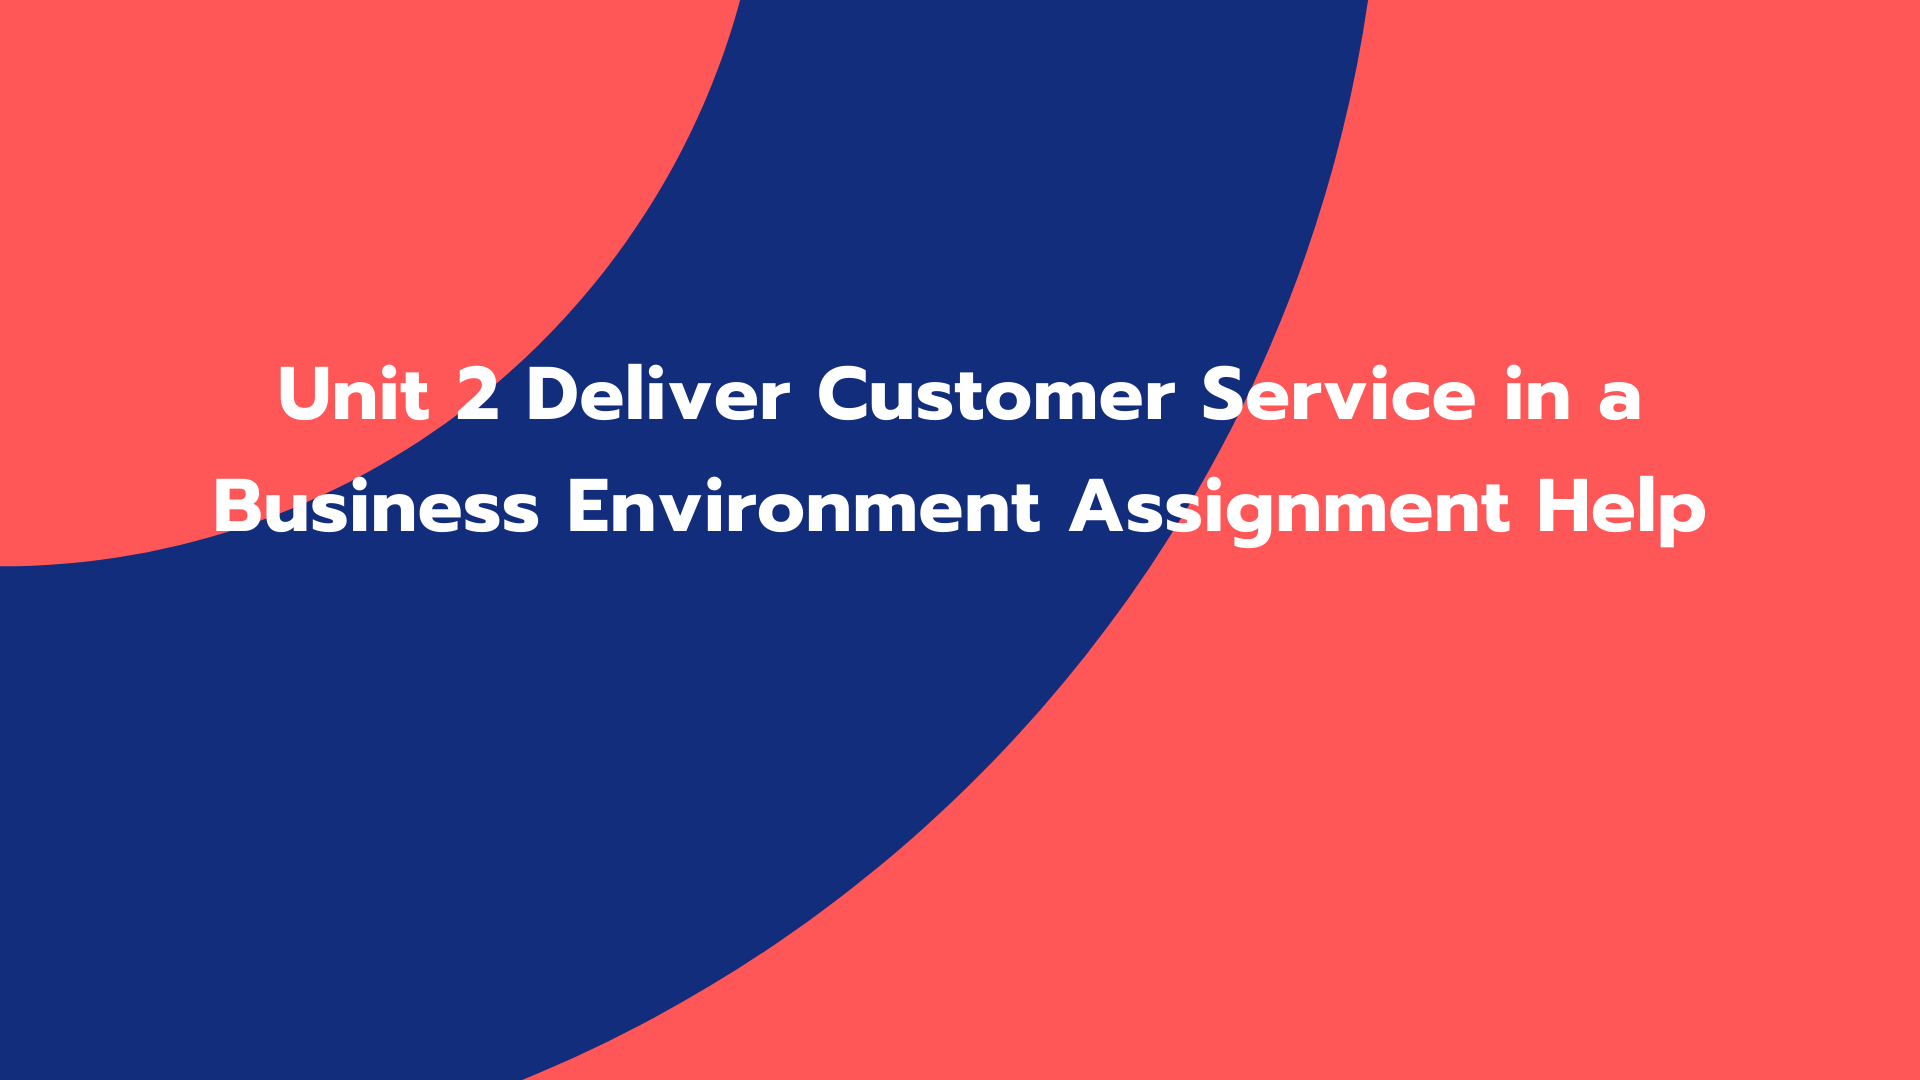 Unit 2 Deliver Customer Service in a Business Environment Assignment Help